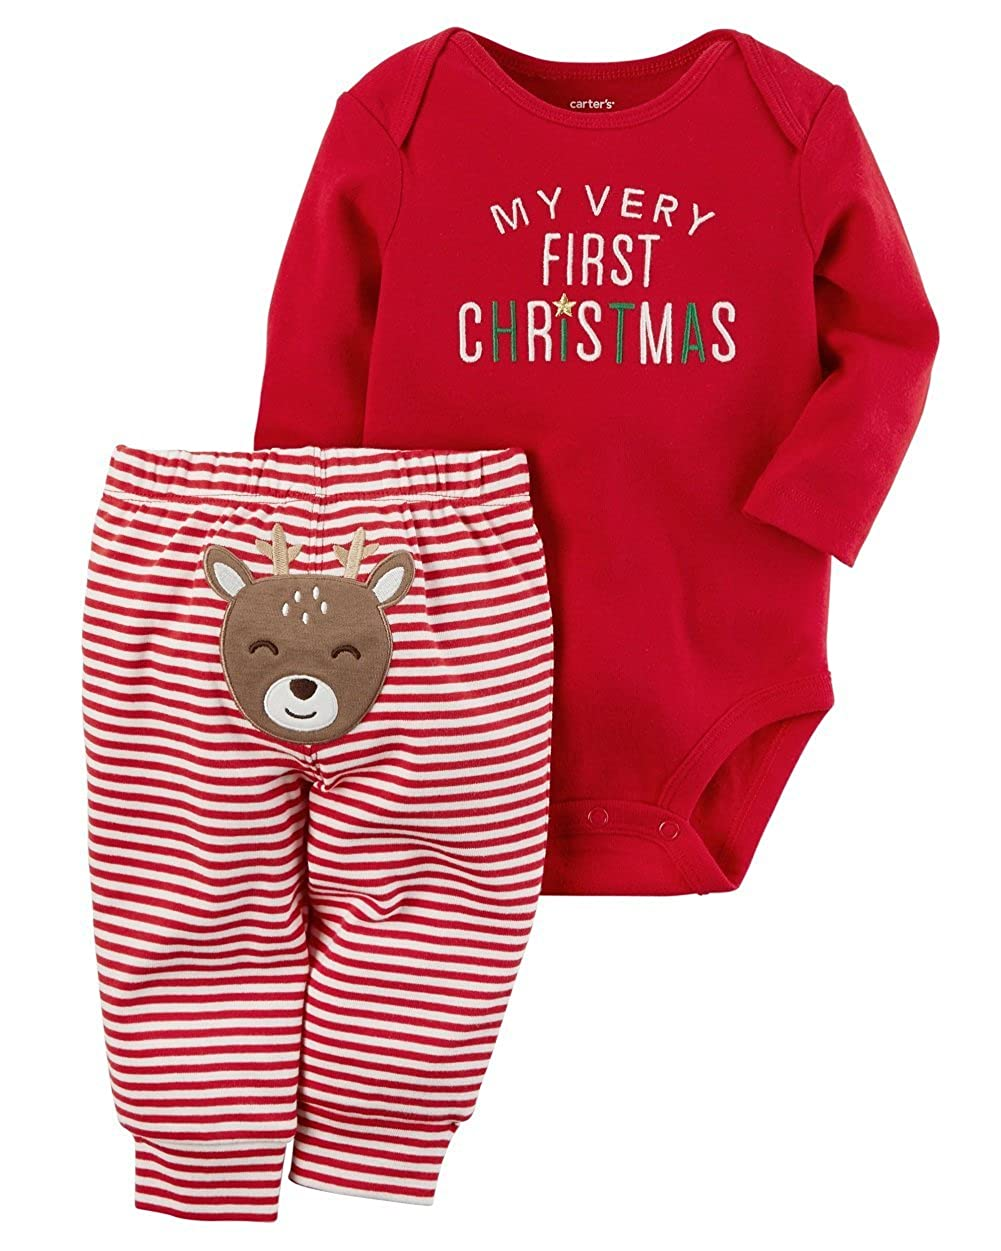 Carter's Unisex-Baby 2 Pc Sets 119g104 Carters